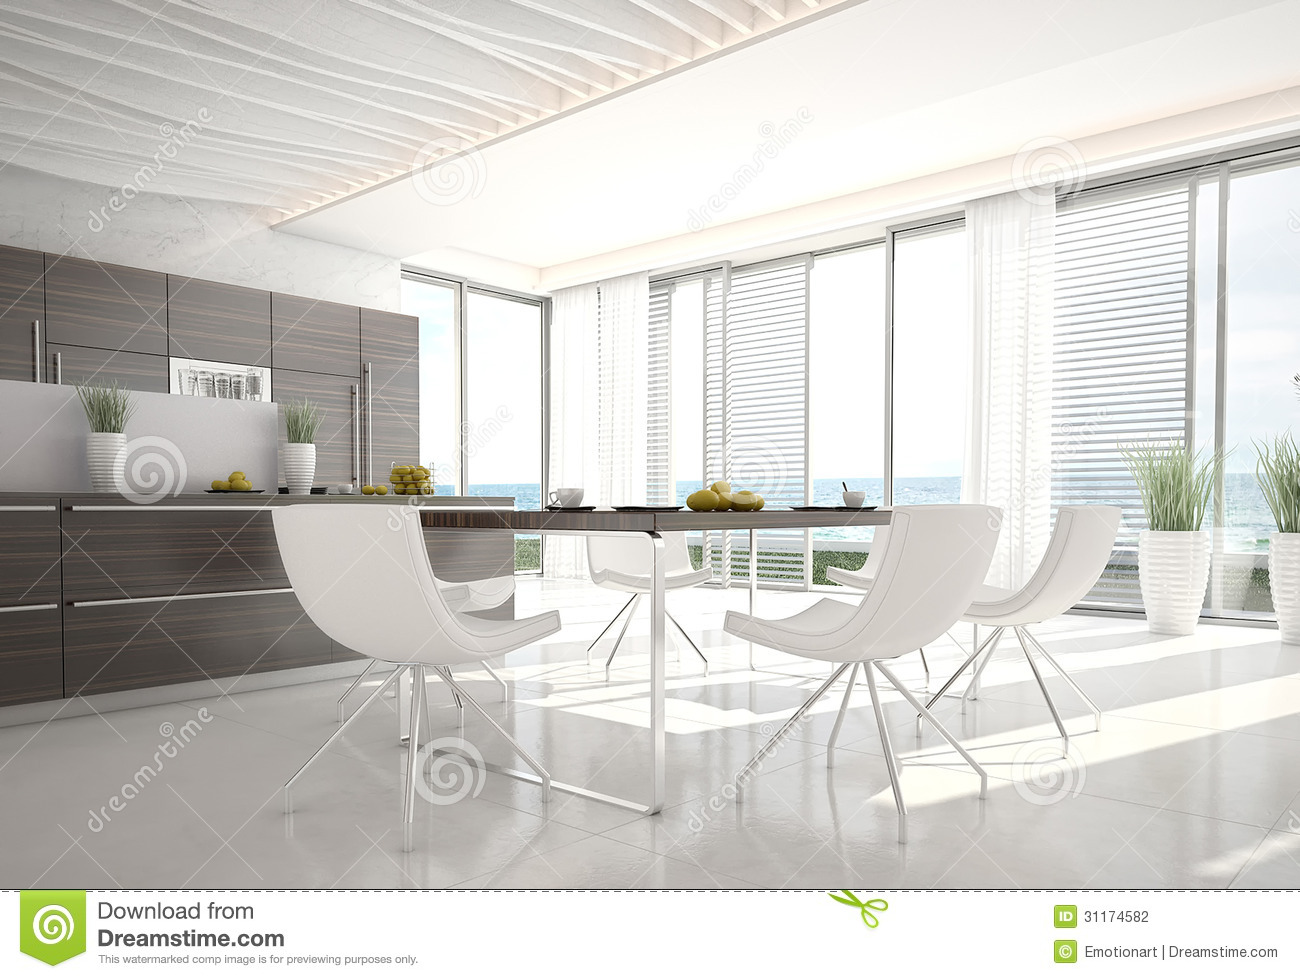 Ultra modern design kitchen interior architecture stock for Modern architectural interior designs